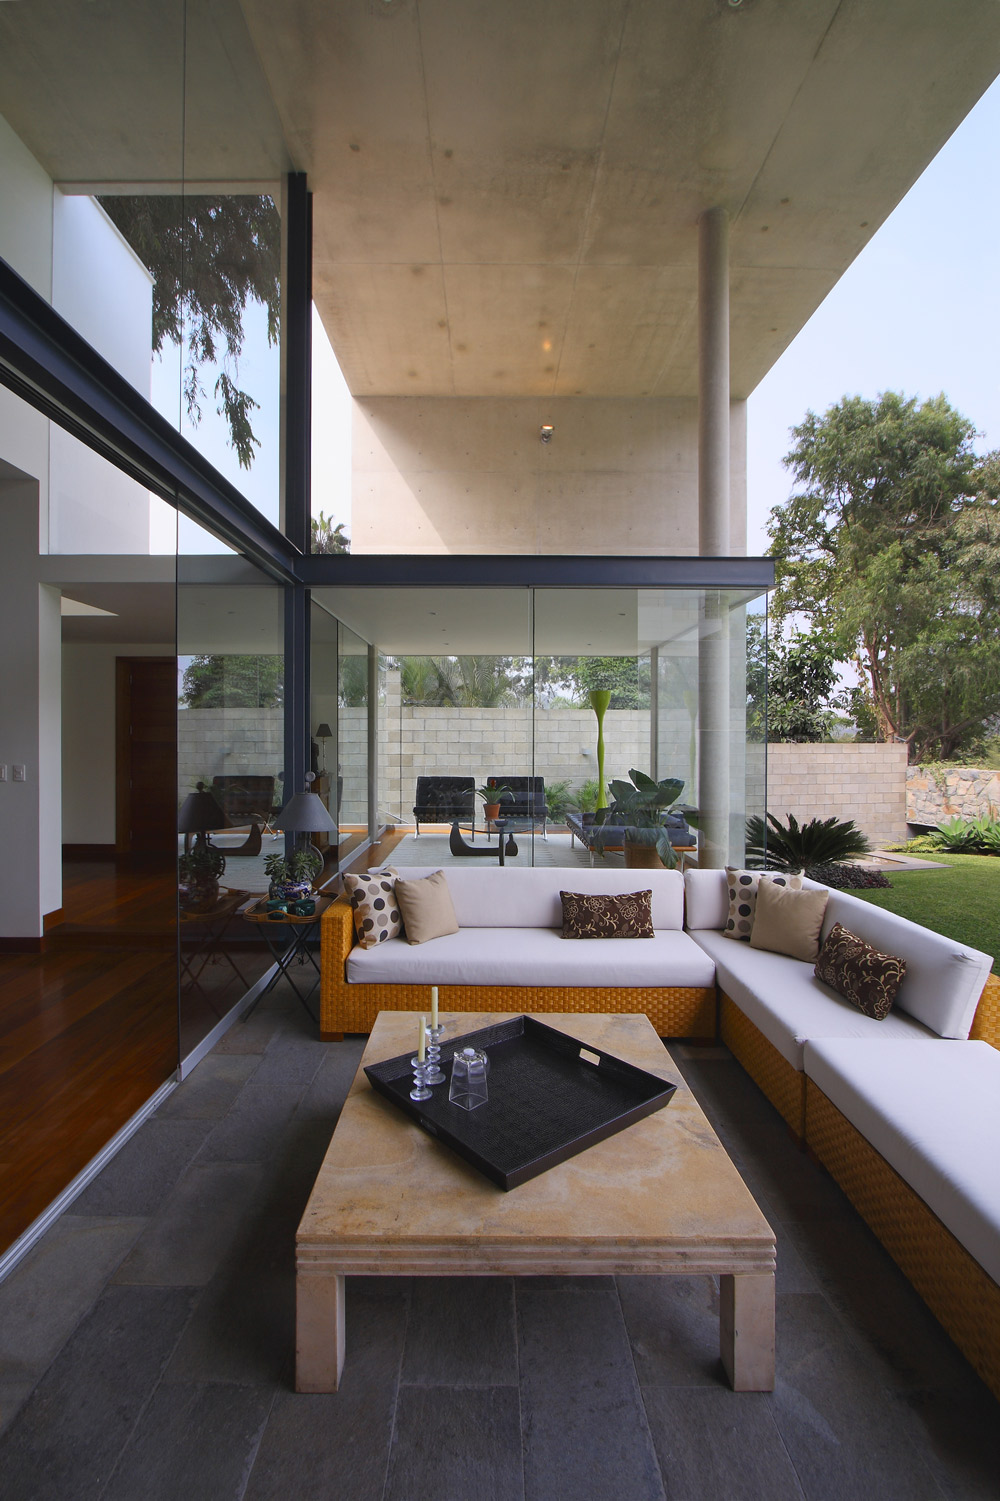 Outdoor Table, Sofa, Terrace, Family Home in Lima, Peru